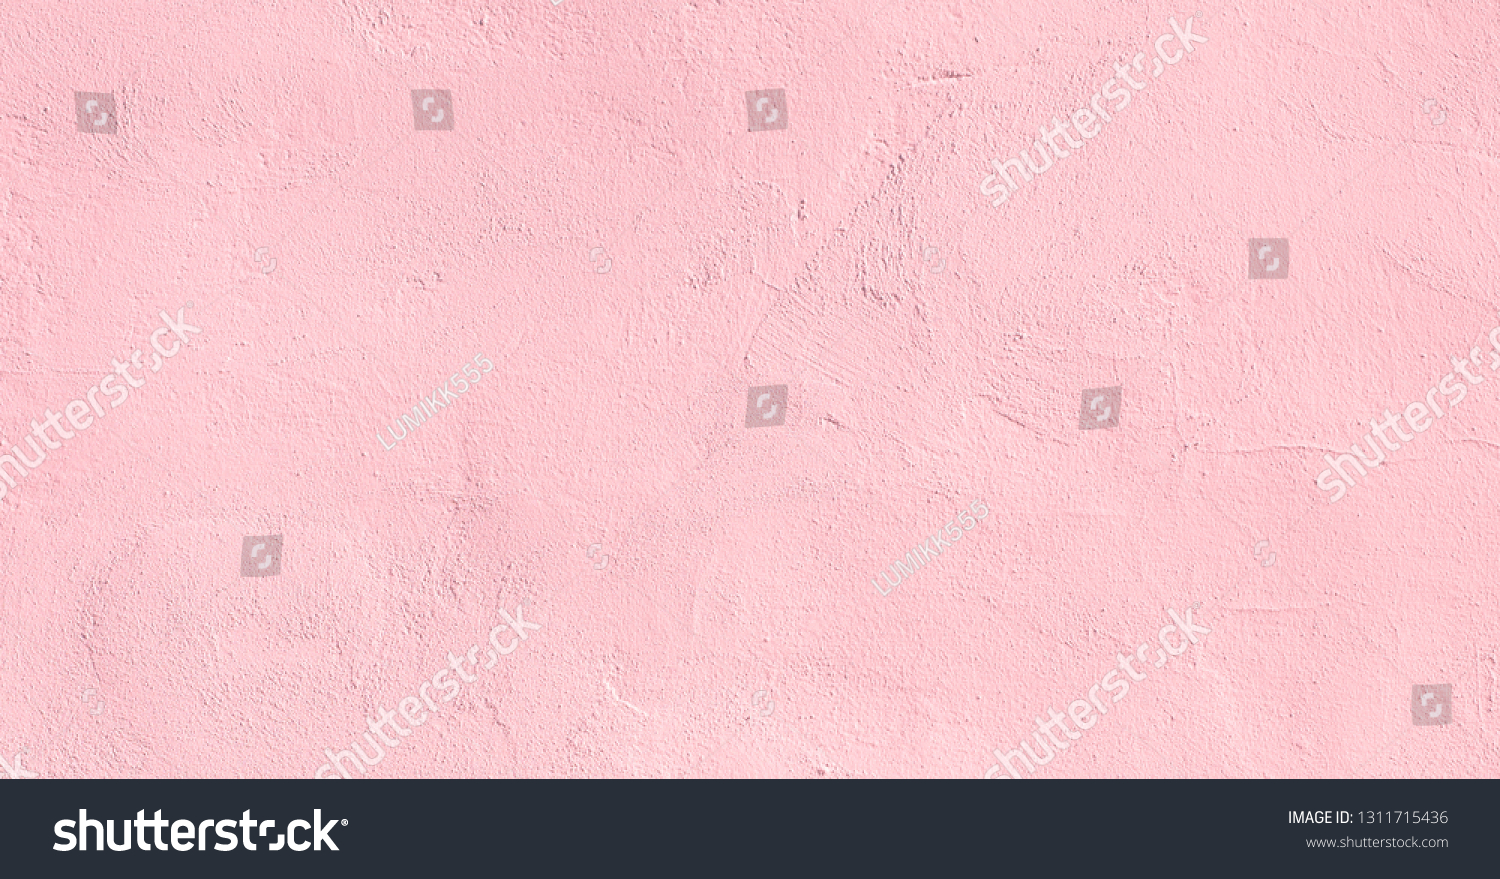 Vintage light pink plaster Wall Texture. Pastel Background. Abstract Painted Wall Surface. Stucco Background With Copy Space For design #1311715436